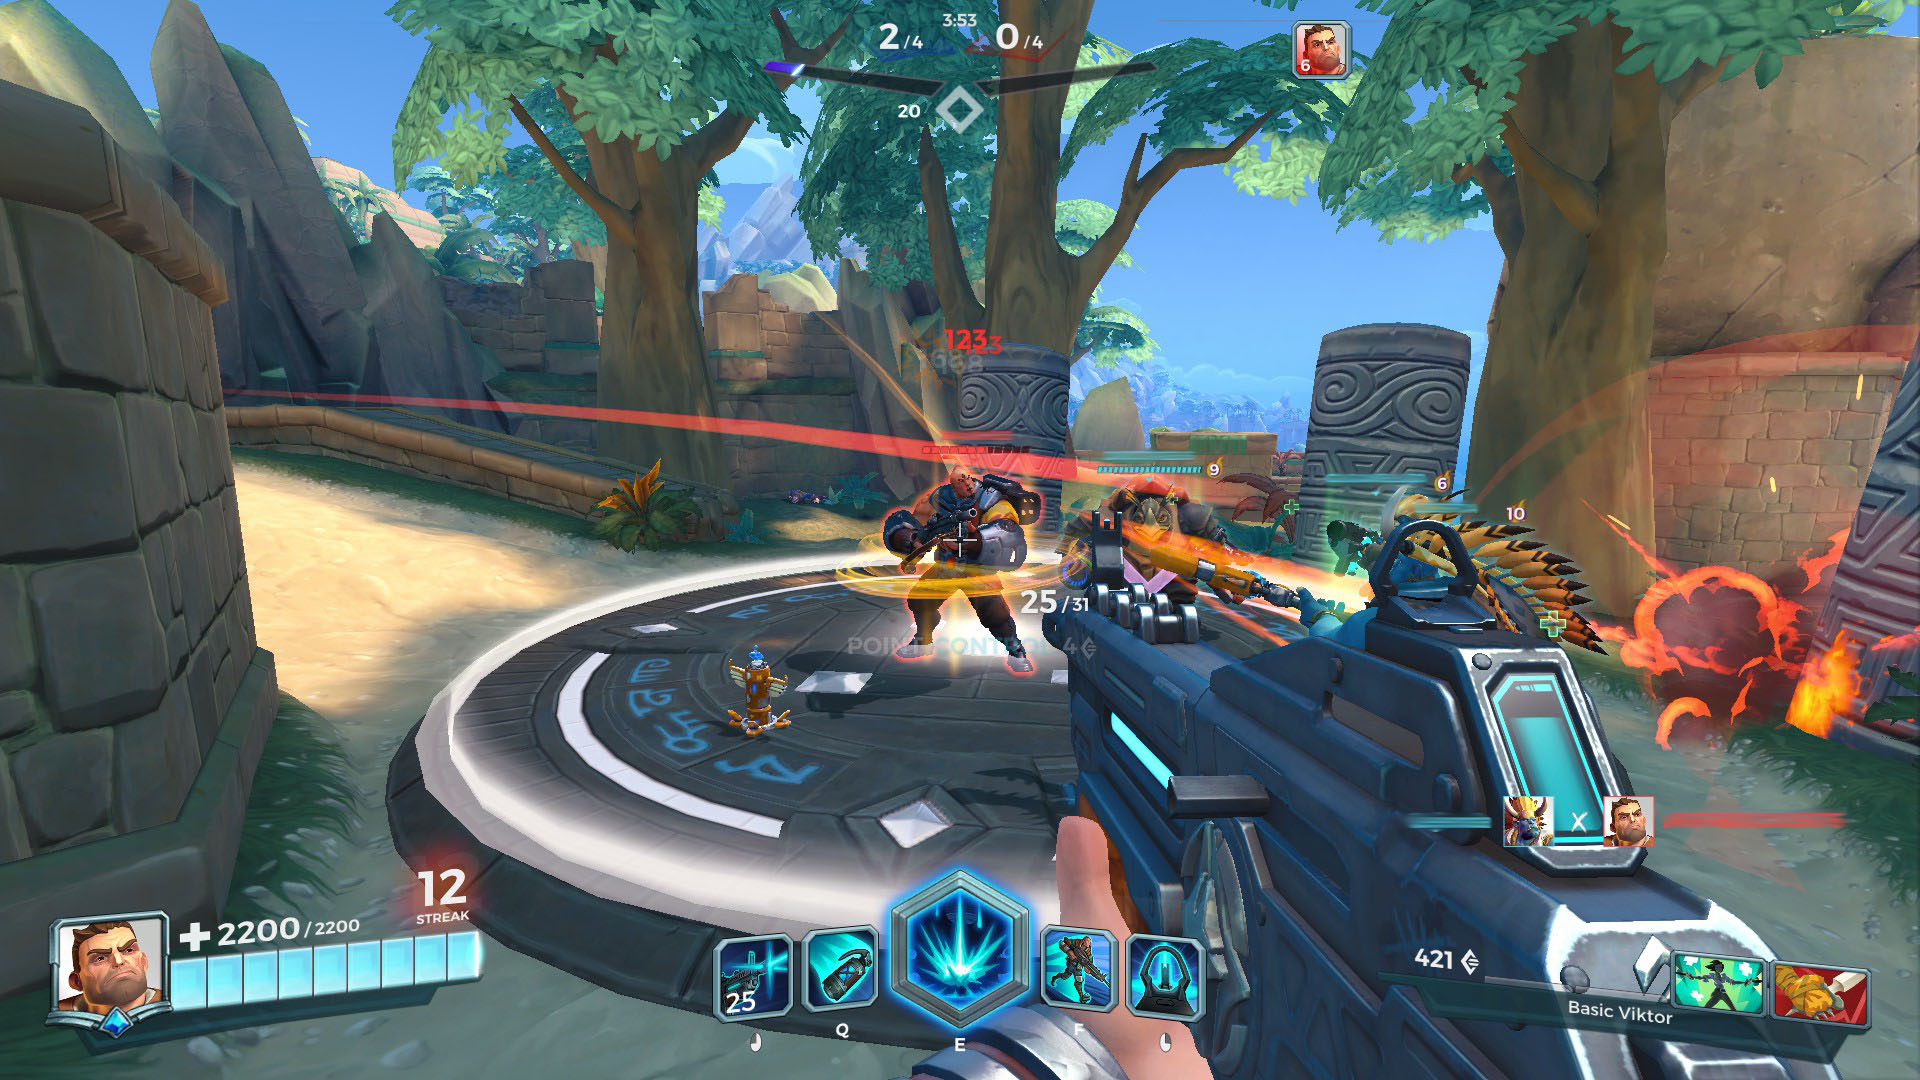 Paladins Early Access Preview